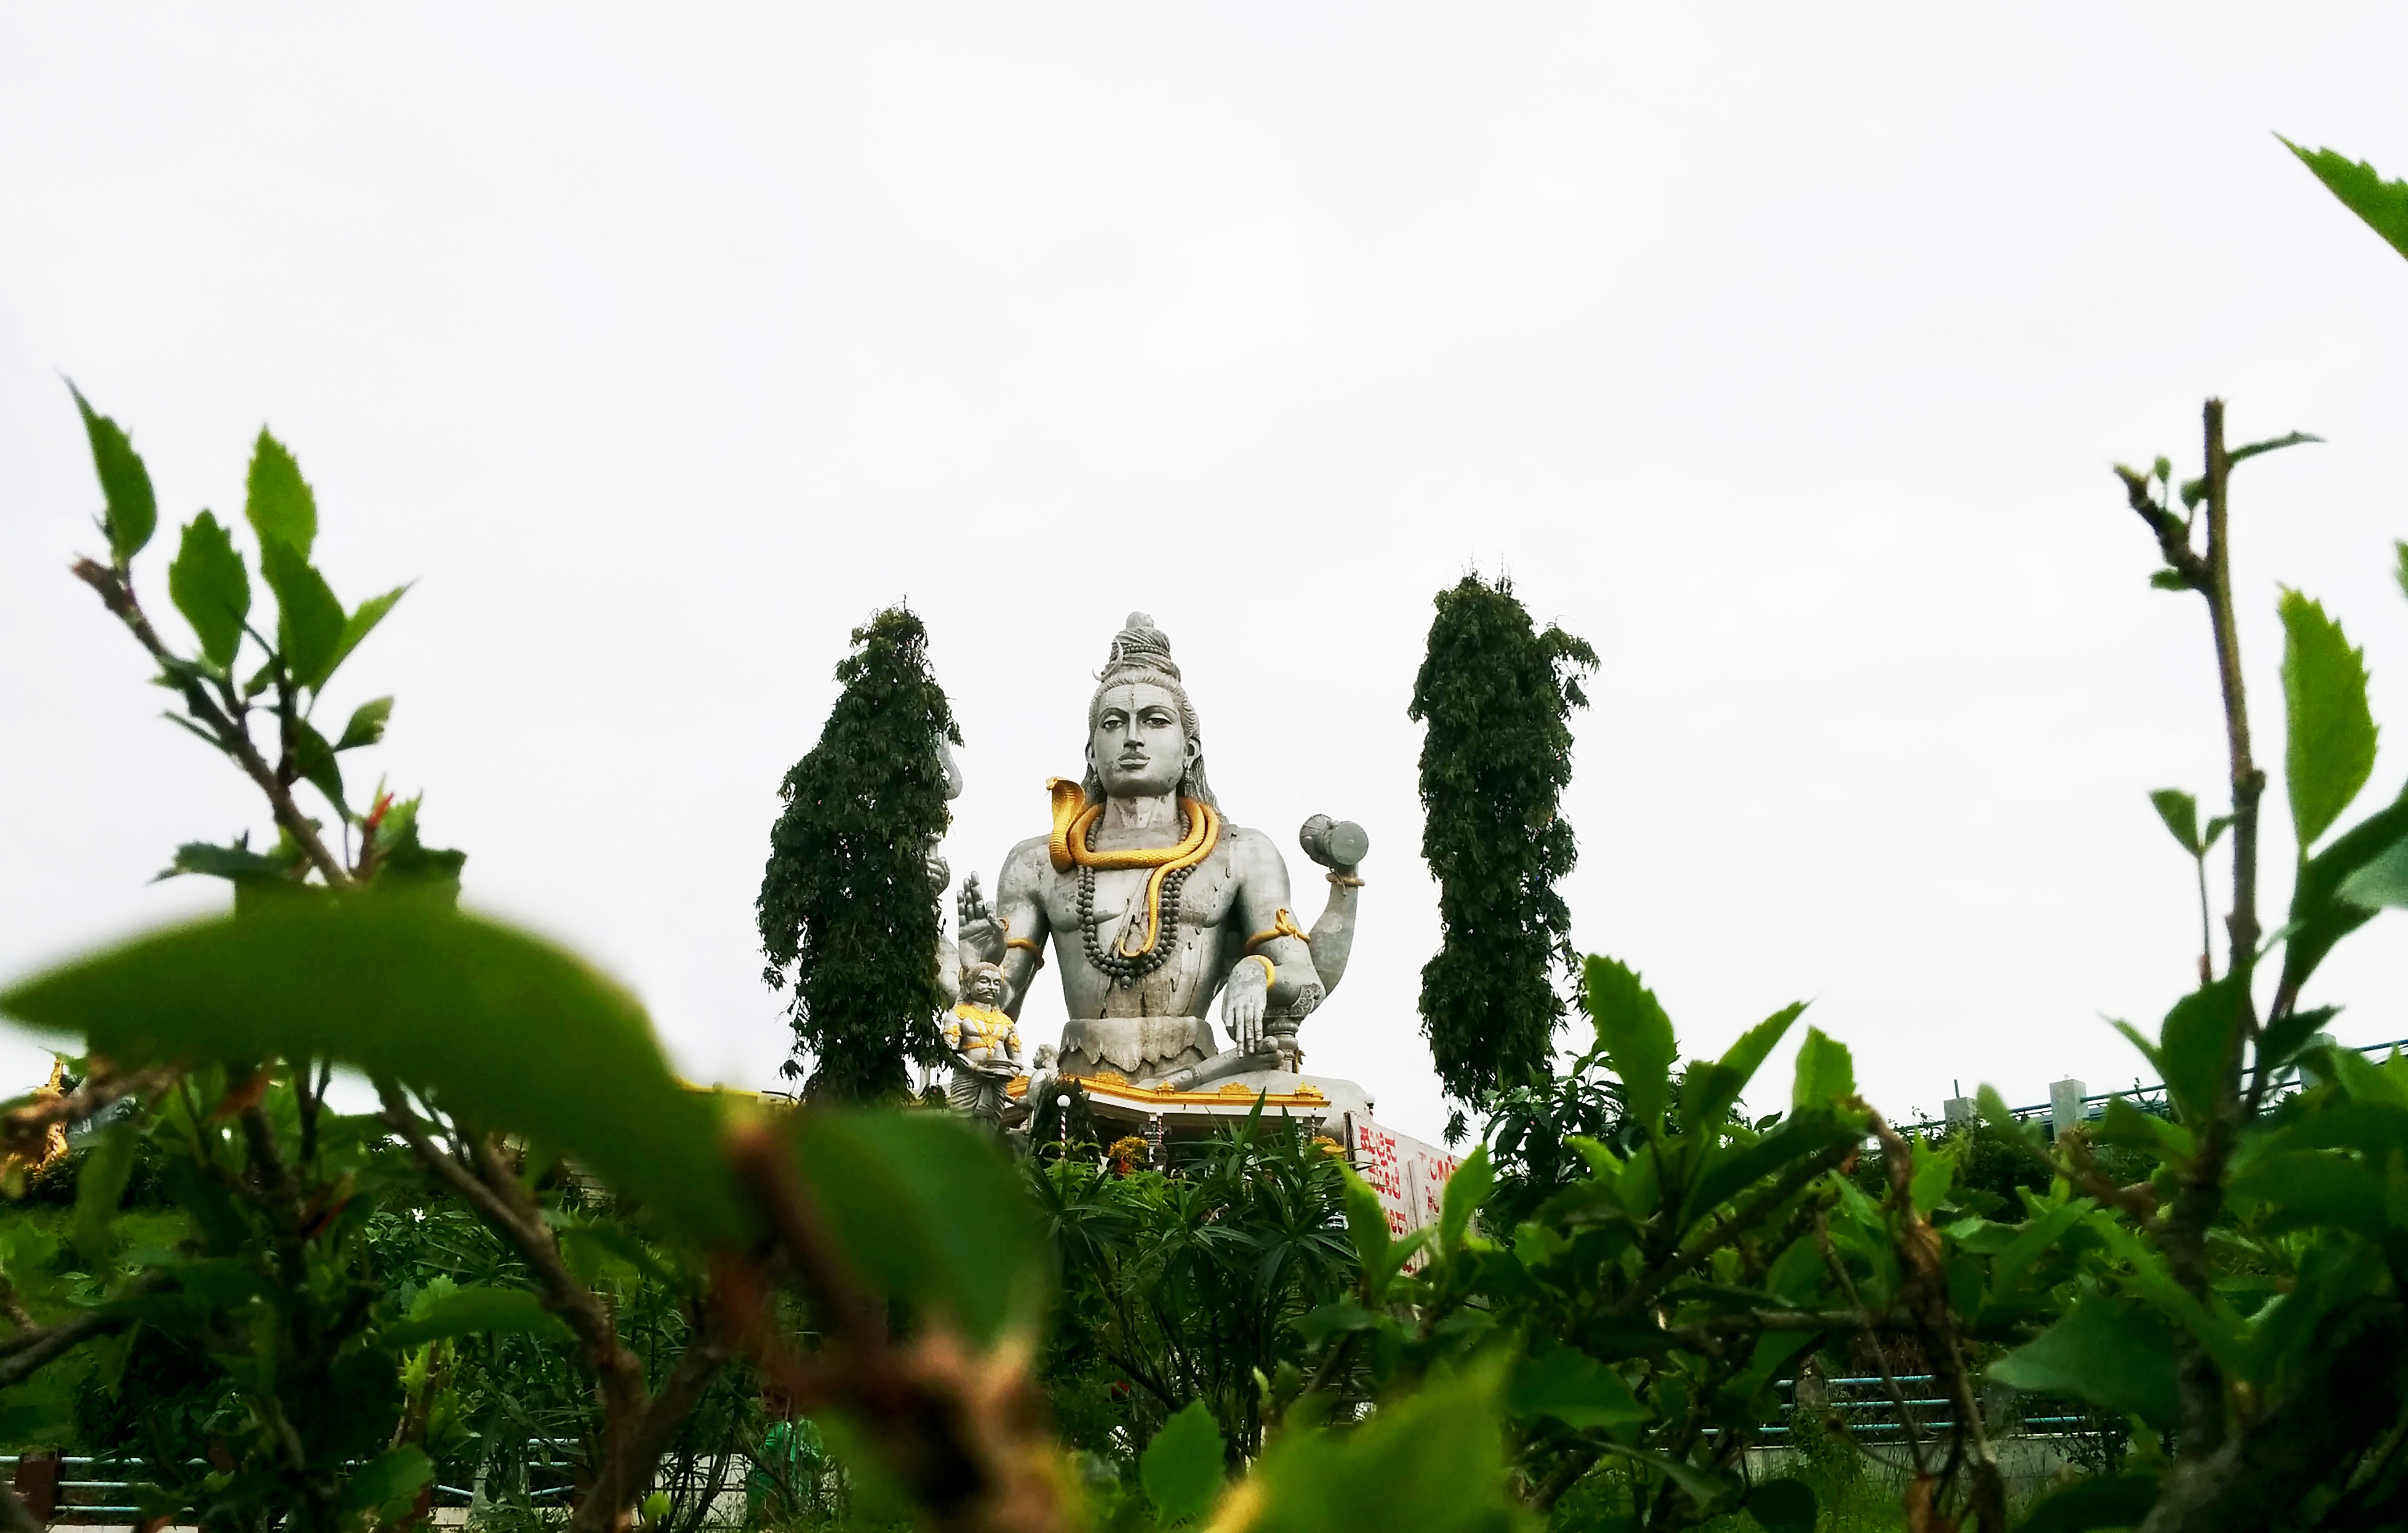 Statue on Other Side of Green Trees, Blooming, Close-up, Colors, Garden, HQ Photo